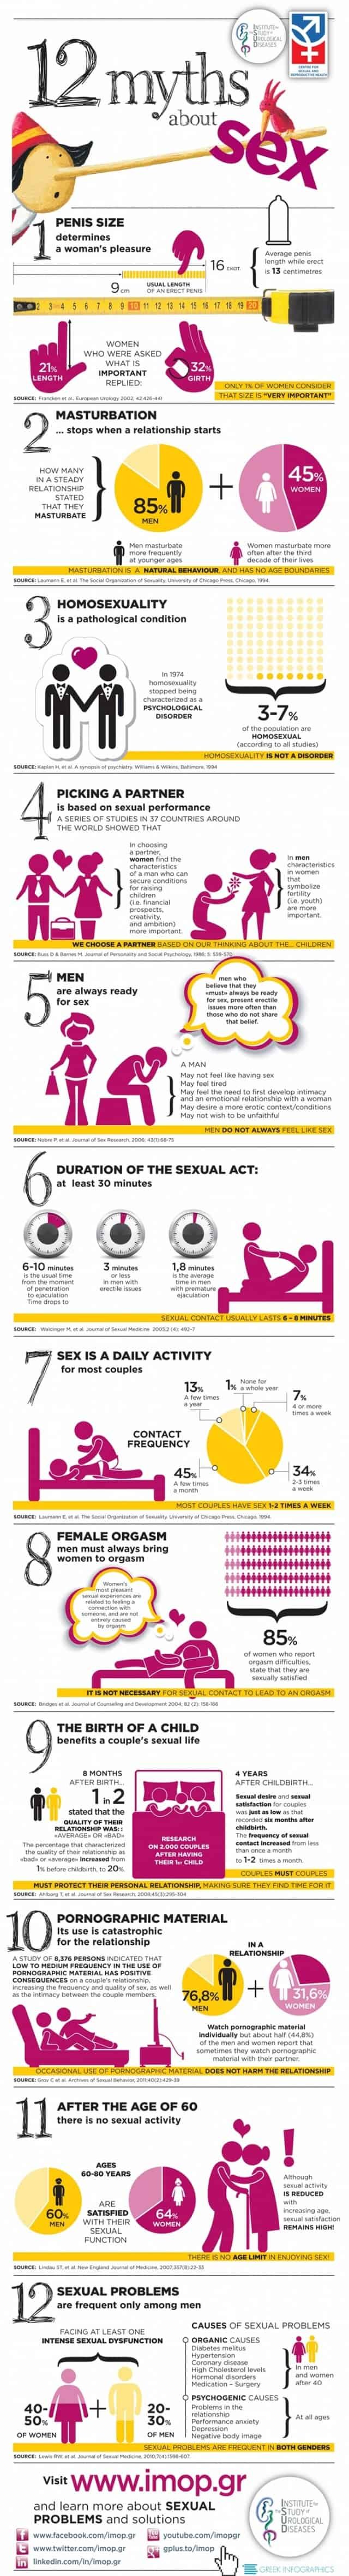 12-myths-about-sex_51438561daaaa_w1805